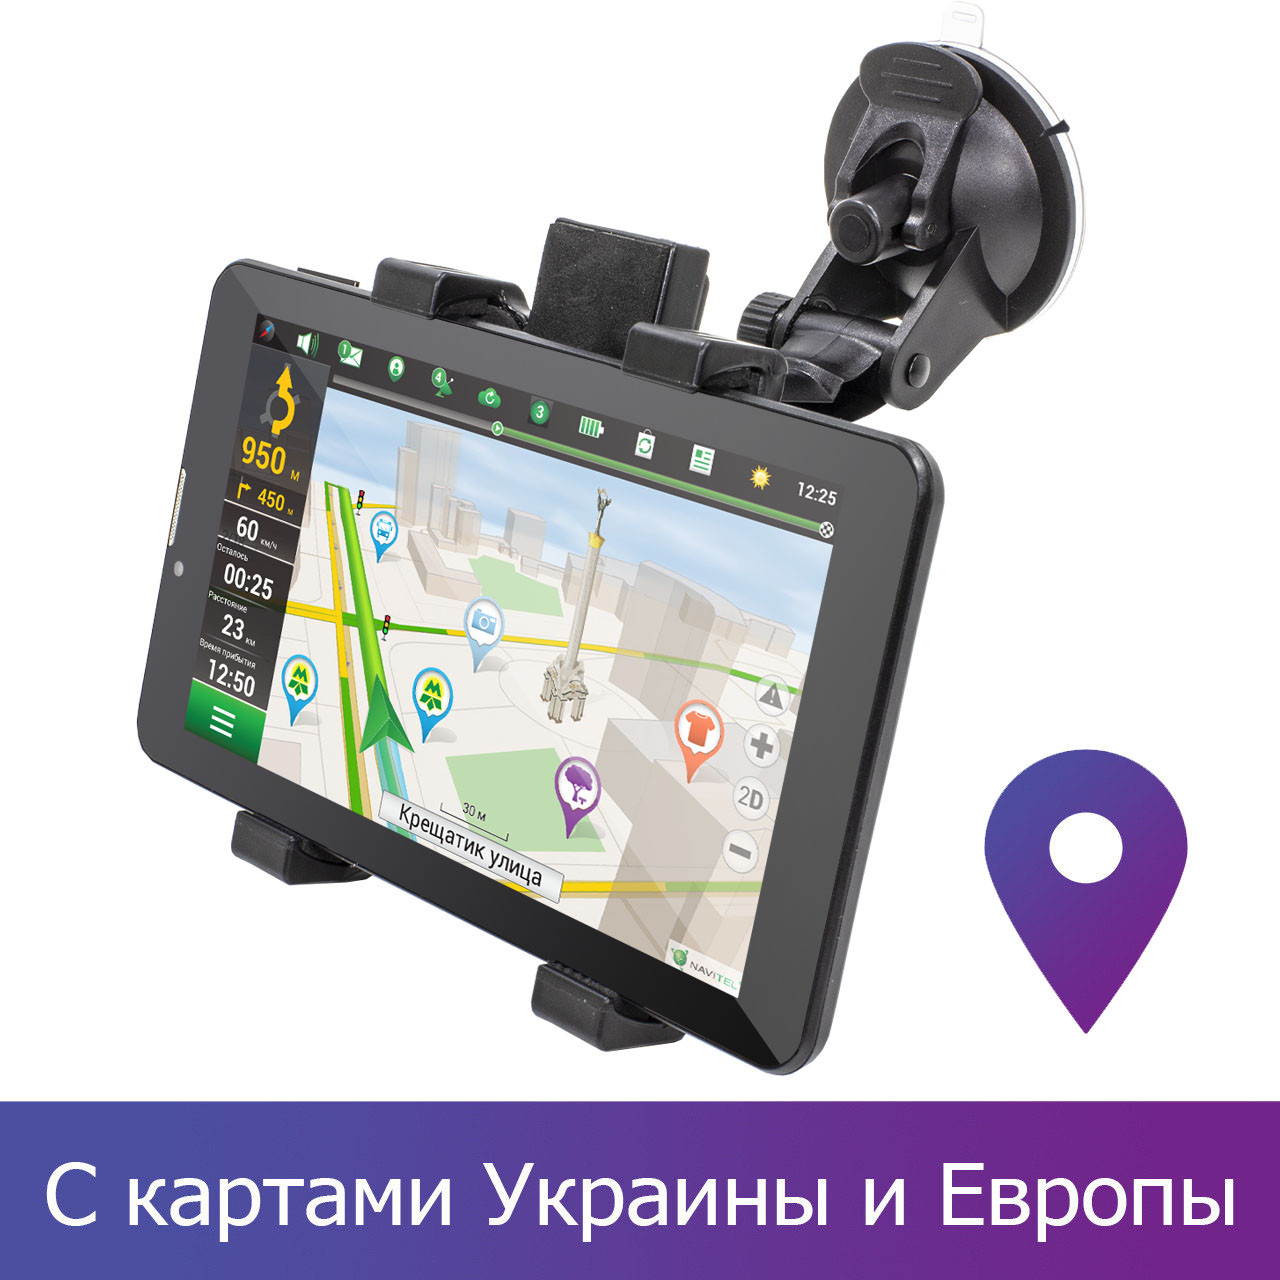 ✓GPS Навигатор 7'' Pioneer DVR700PI Max 1/16GB IPS Android 6 3000 mAh Андроид ХИТ